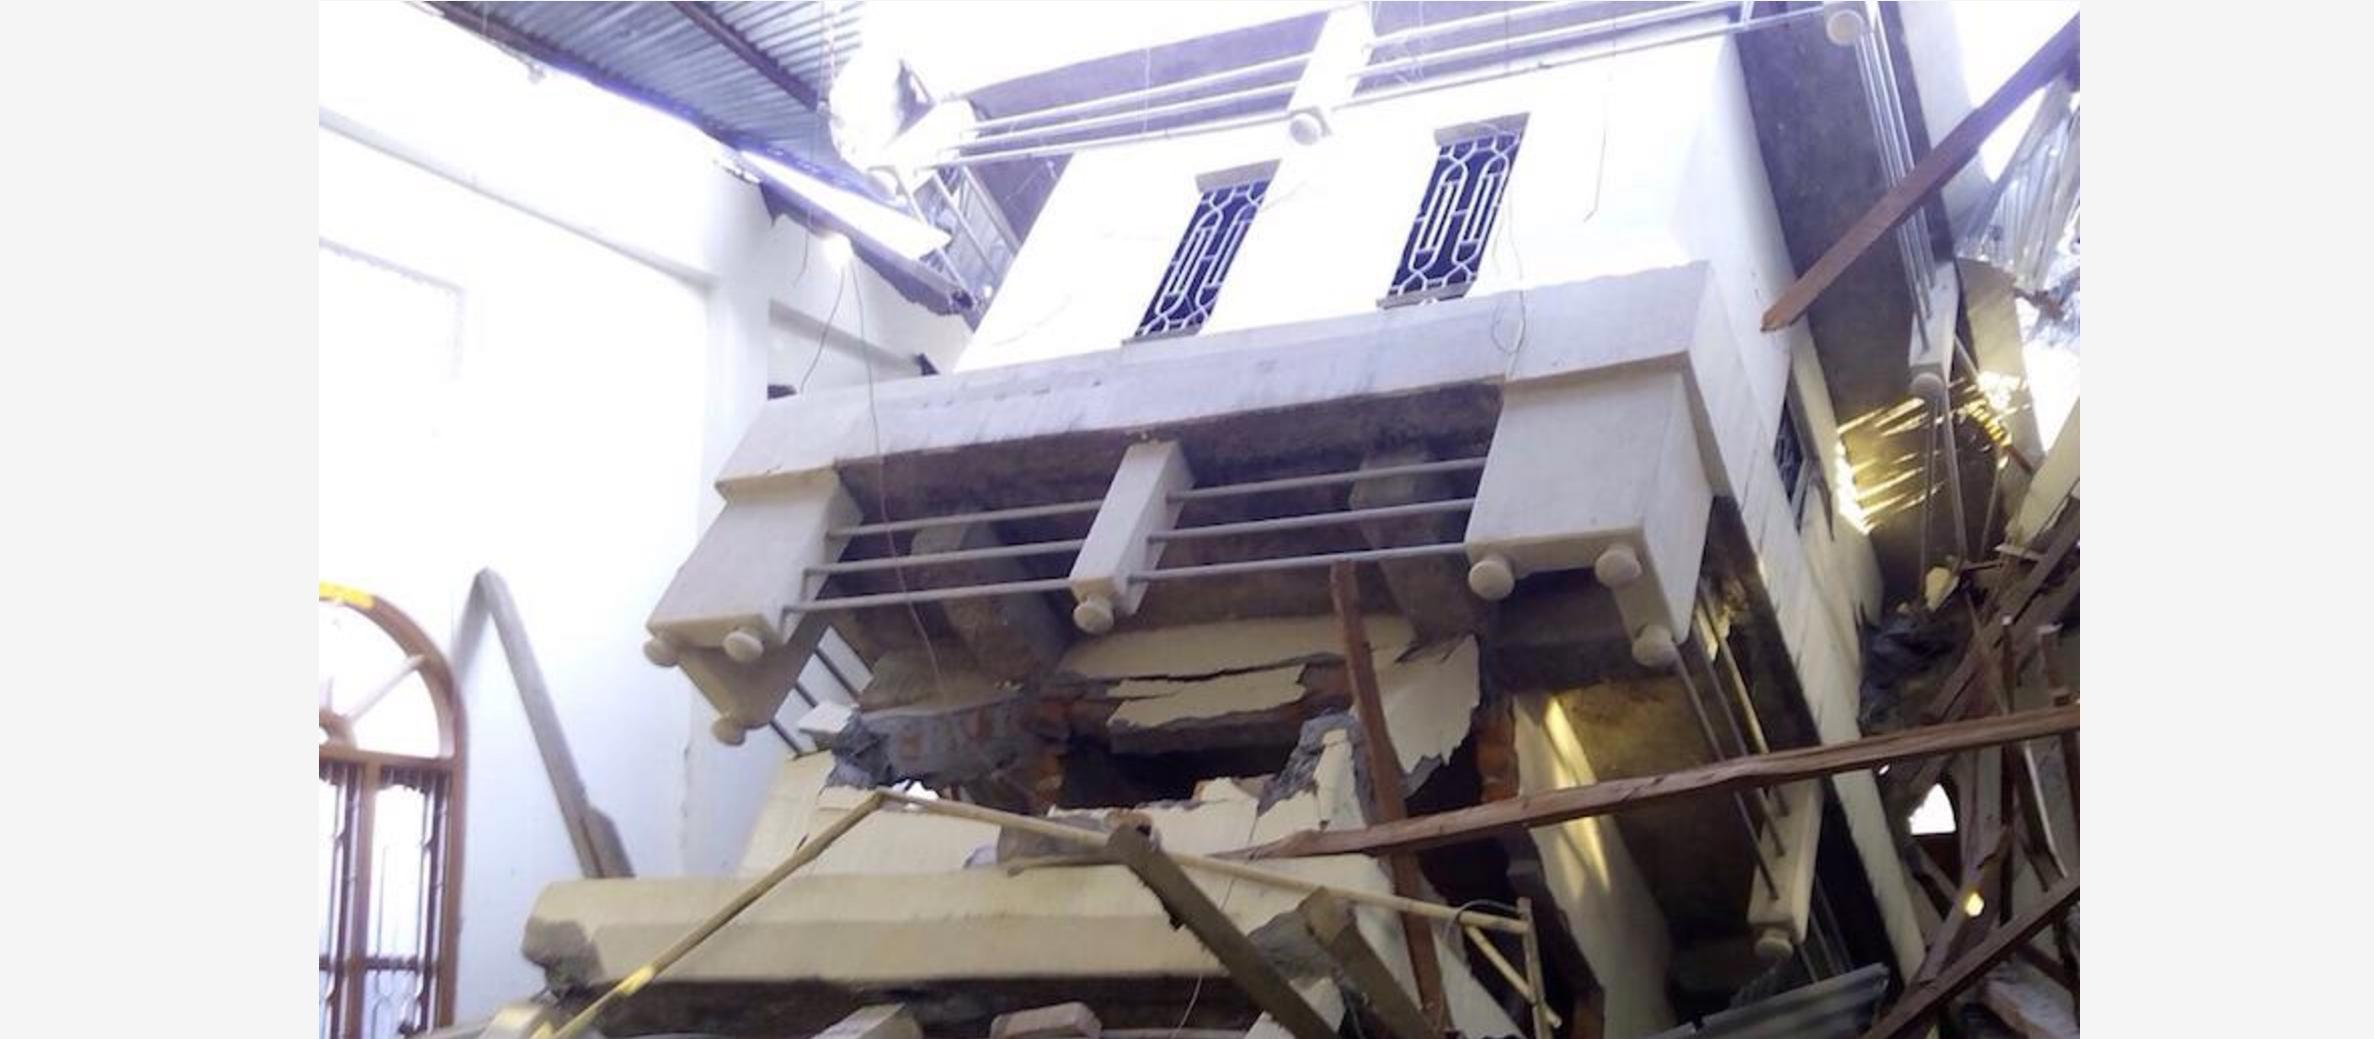 6.7 magnitude earthquake hits India's Jewish community